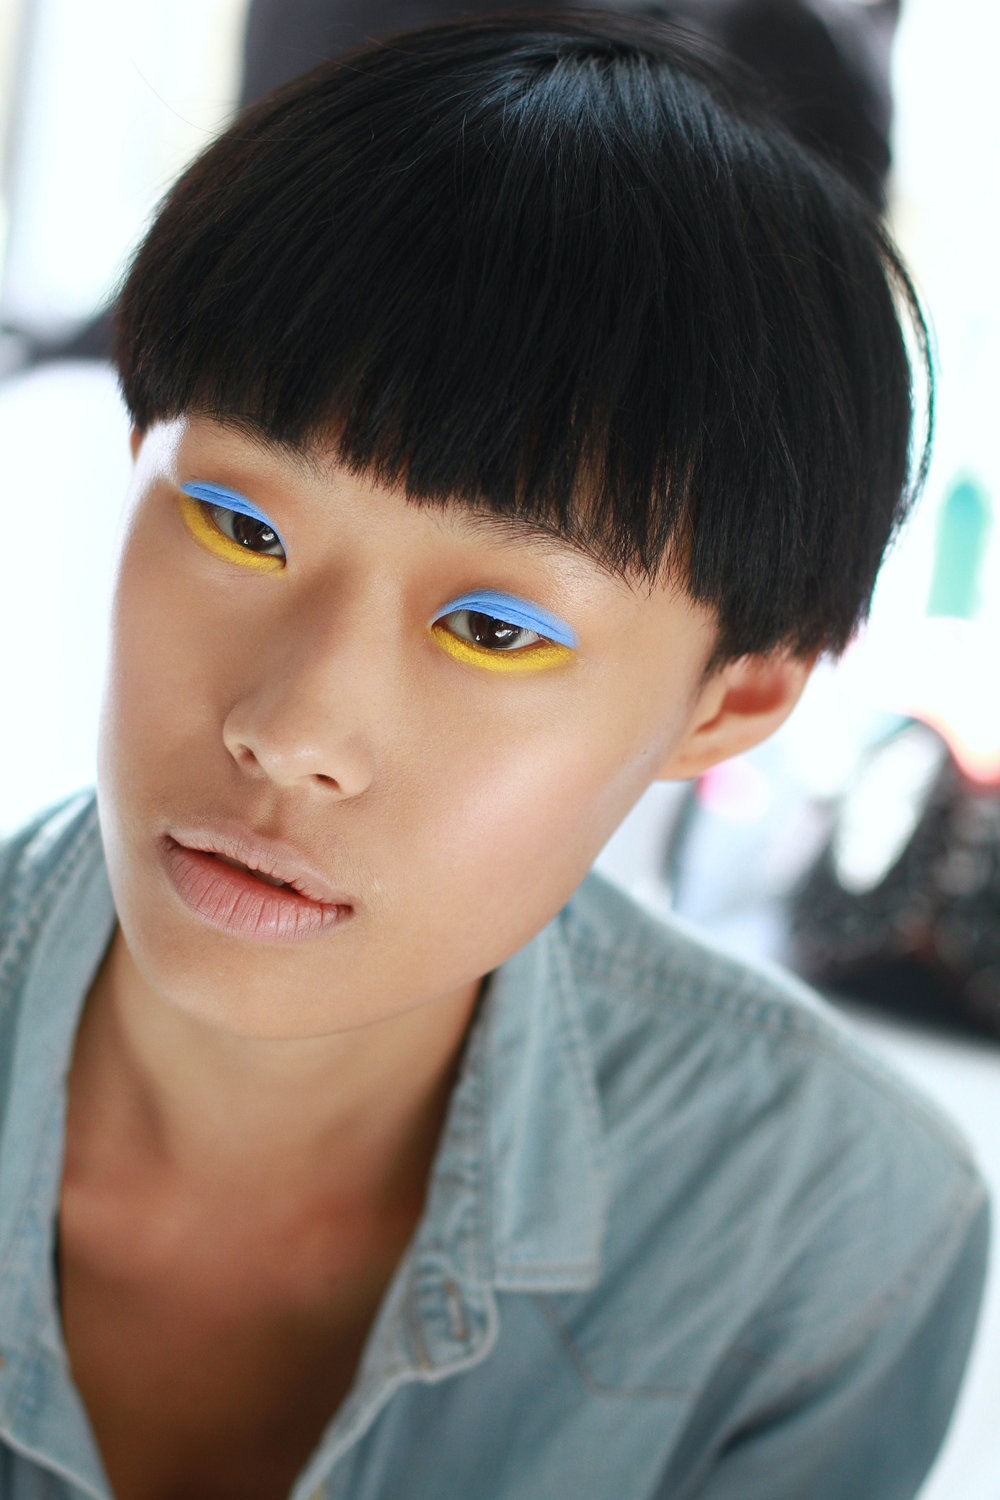 Backstage at Delpozo #NYFW.  blue + yellow lines Hair by Morrocanoil, makeup by MAC.  Image c/o Rachel Scroggins (The Greyest Ghost) for Cult of Pretty